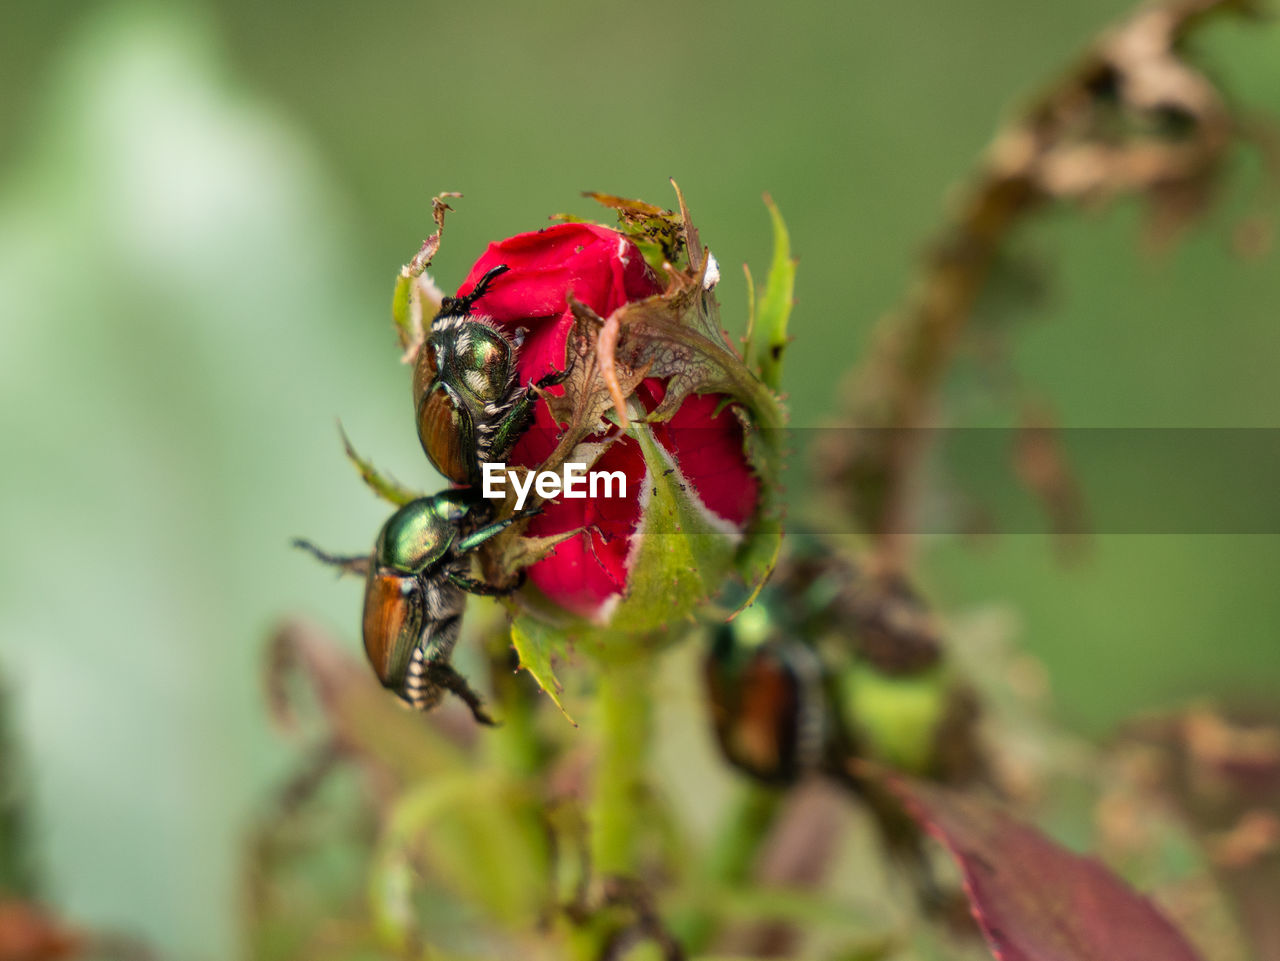 invertebrate, insect, animals in the wild, animal themes, animal wildlife, close-up, plant, animal, one animal, selective focus, leaf, plant part, day, nature, growth, no people, beauty in nature, green color, focus on foreground, red, outdoors, pollination